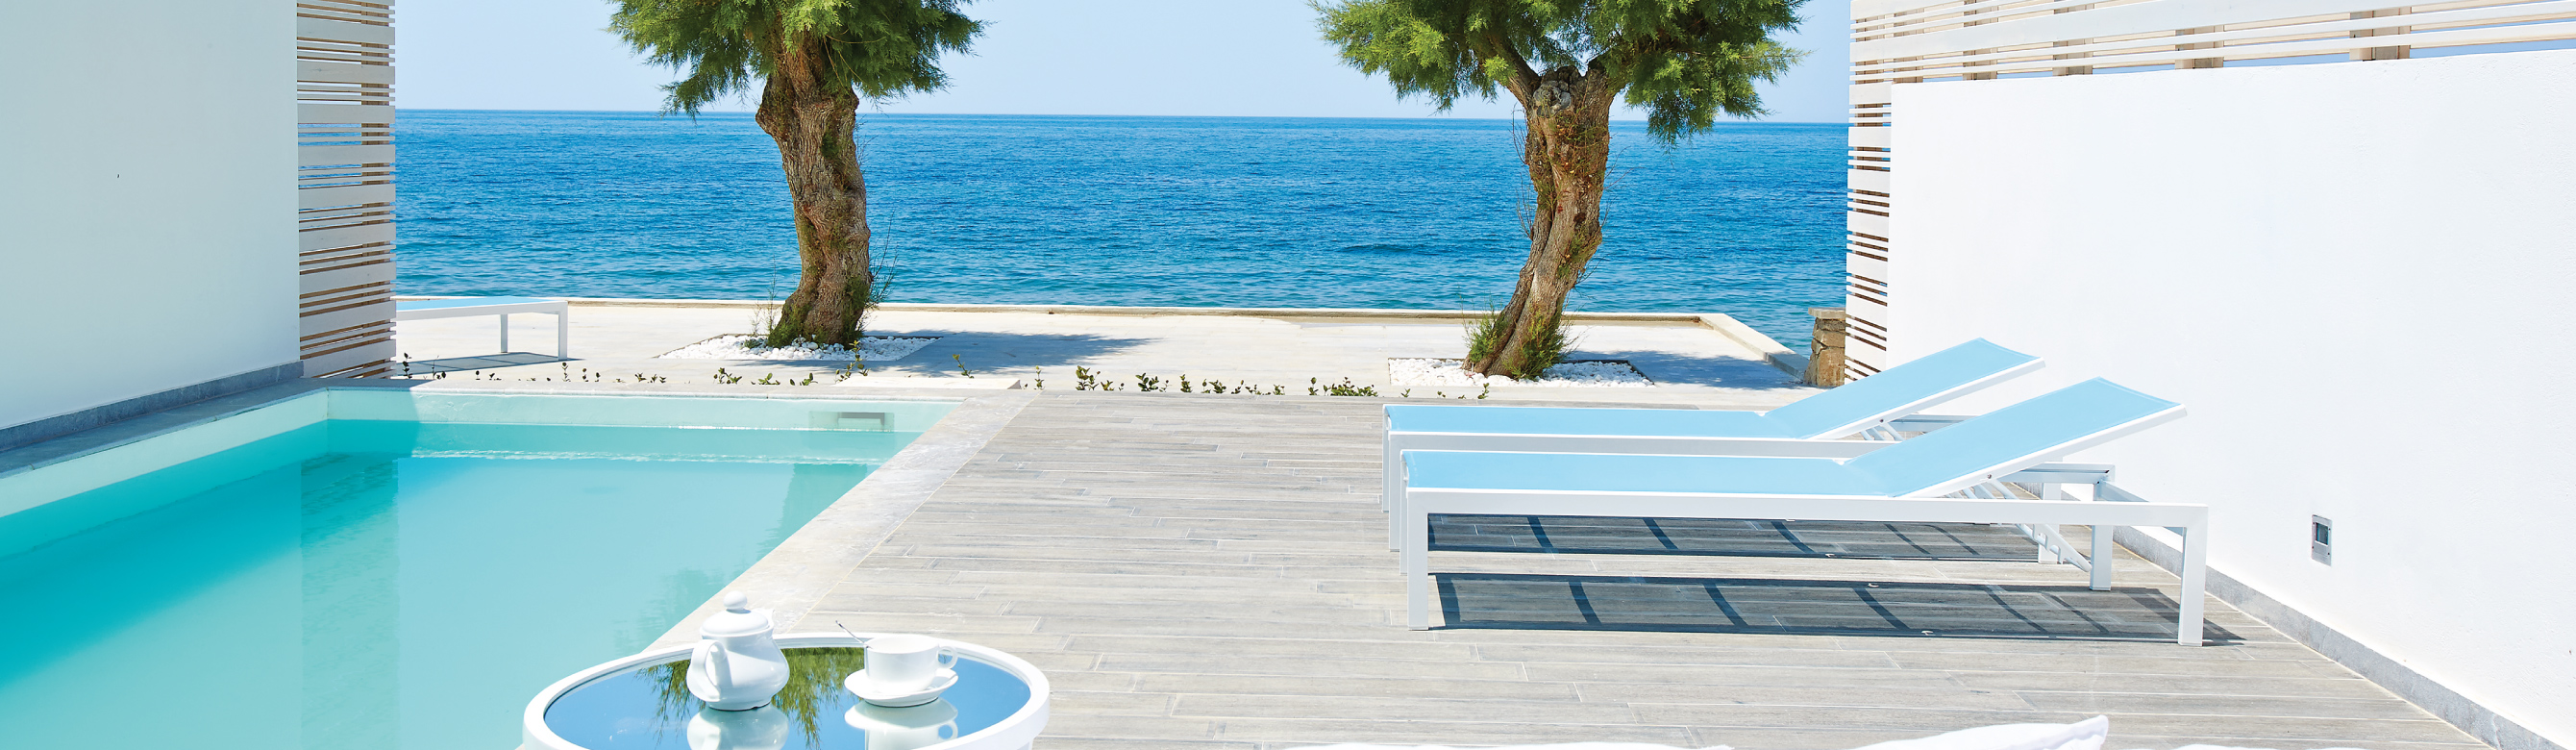 24-Villa-Grand-Luxe-Yali-Private-Pool,-Private-Sun-Terrace-and-Pool-DeckS.jpg